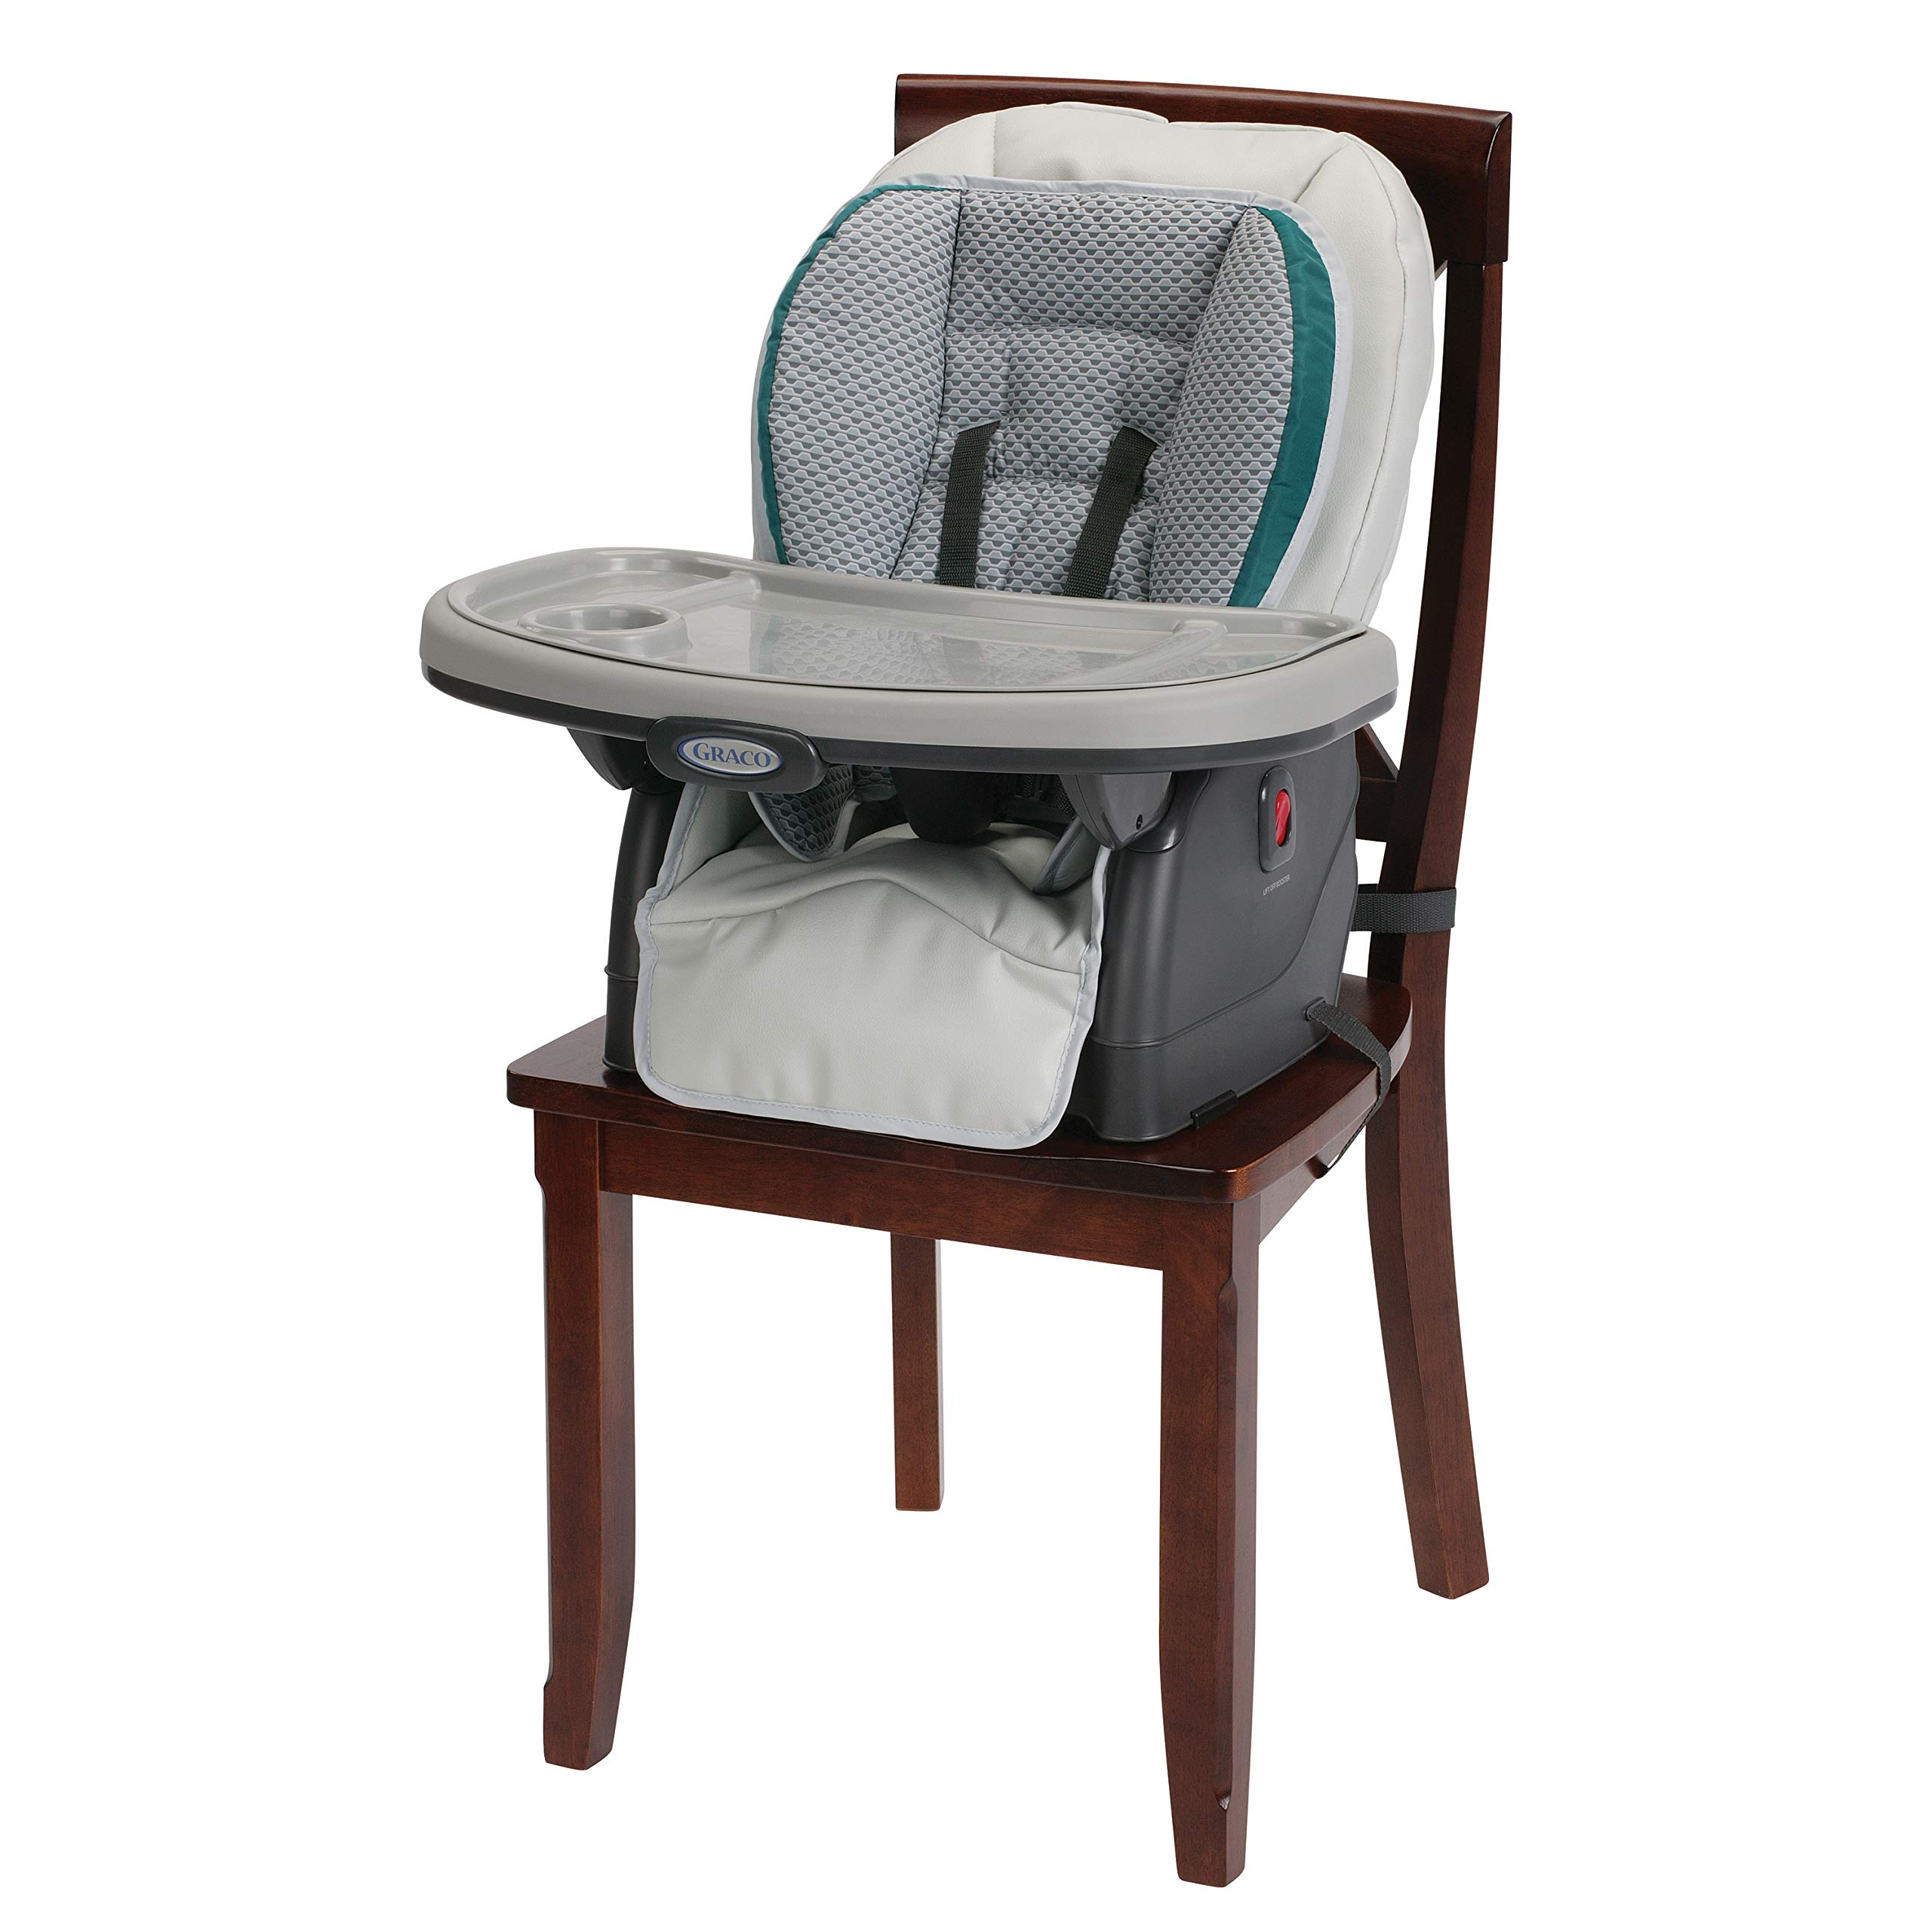 Graco Blossom 6-in-1 Convertible Highchair, Sapphire by Graco (Image #4)